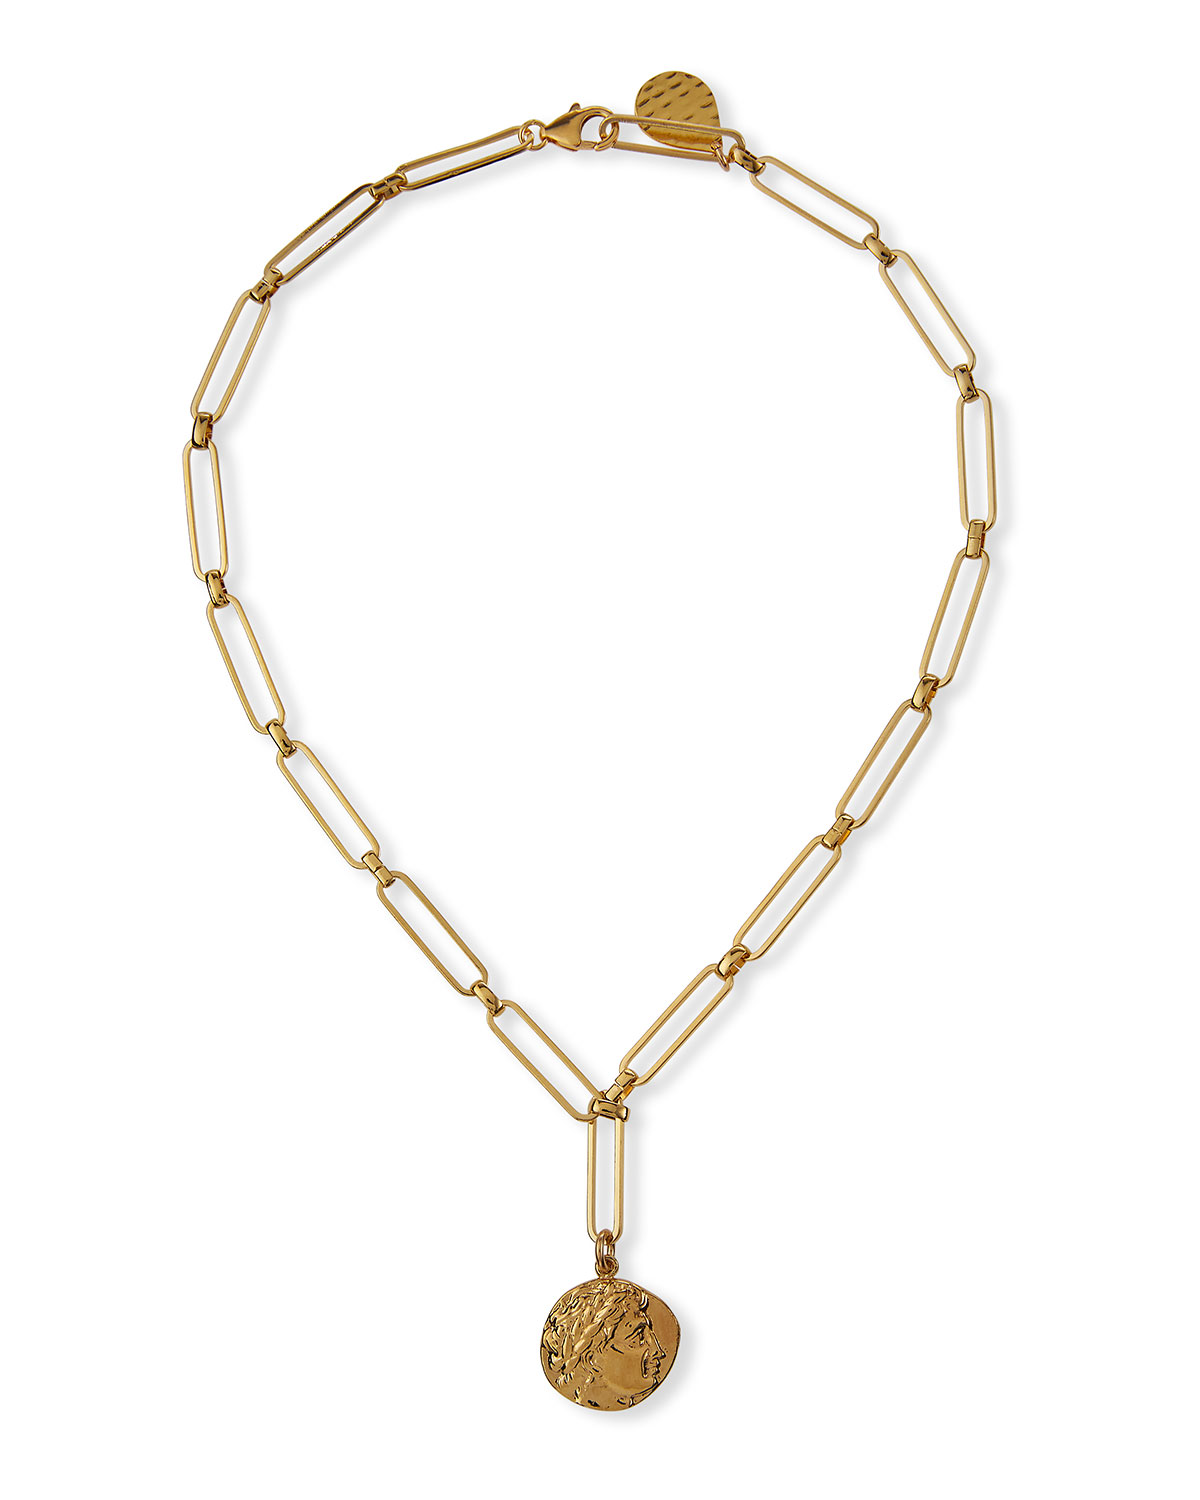 24k Gold-Plate Coin Pendant Necklace